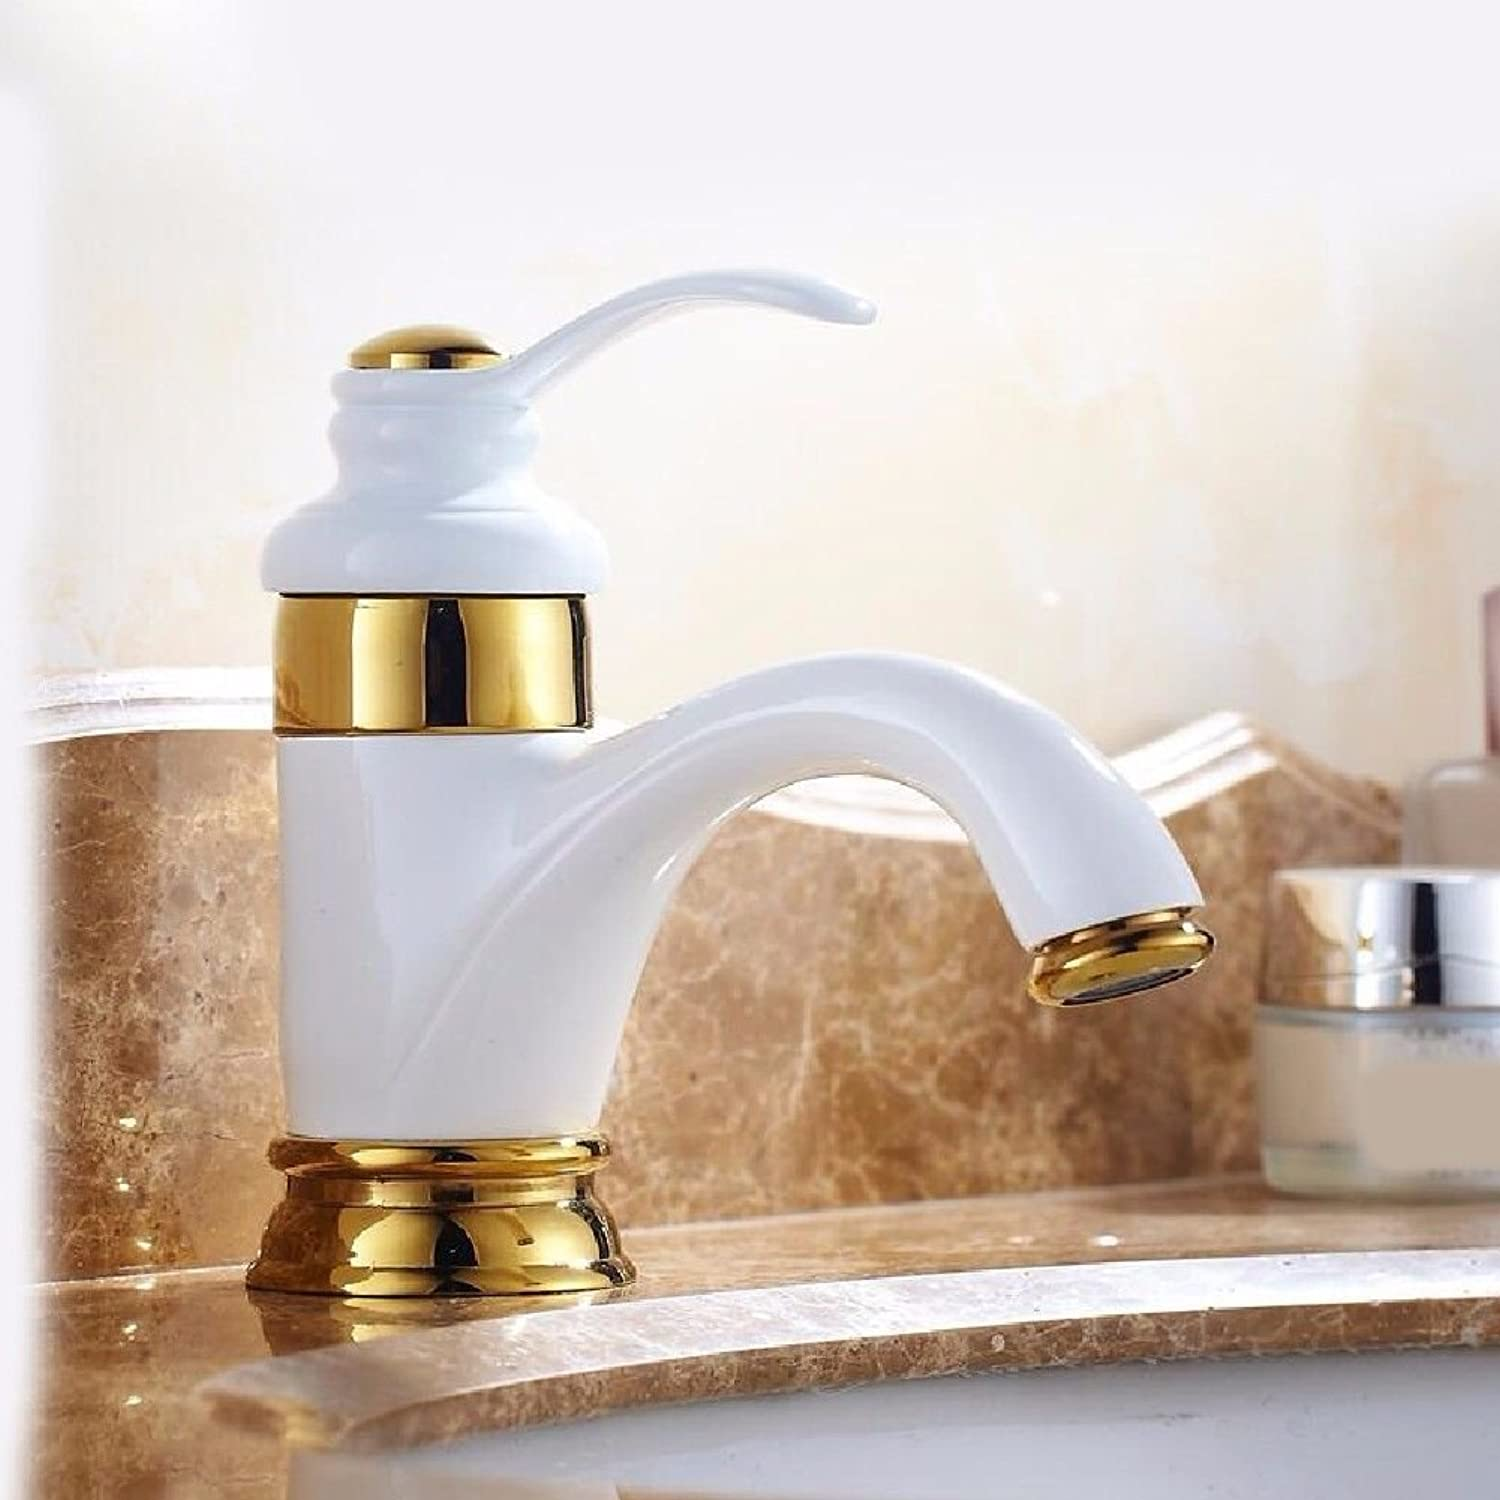 NewBorn Faucet Water Taps Hot And Cold Water Antique-Brass Painted White Water Basin And Cold Water Water Tap